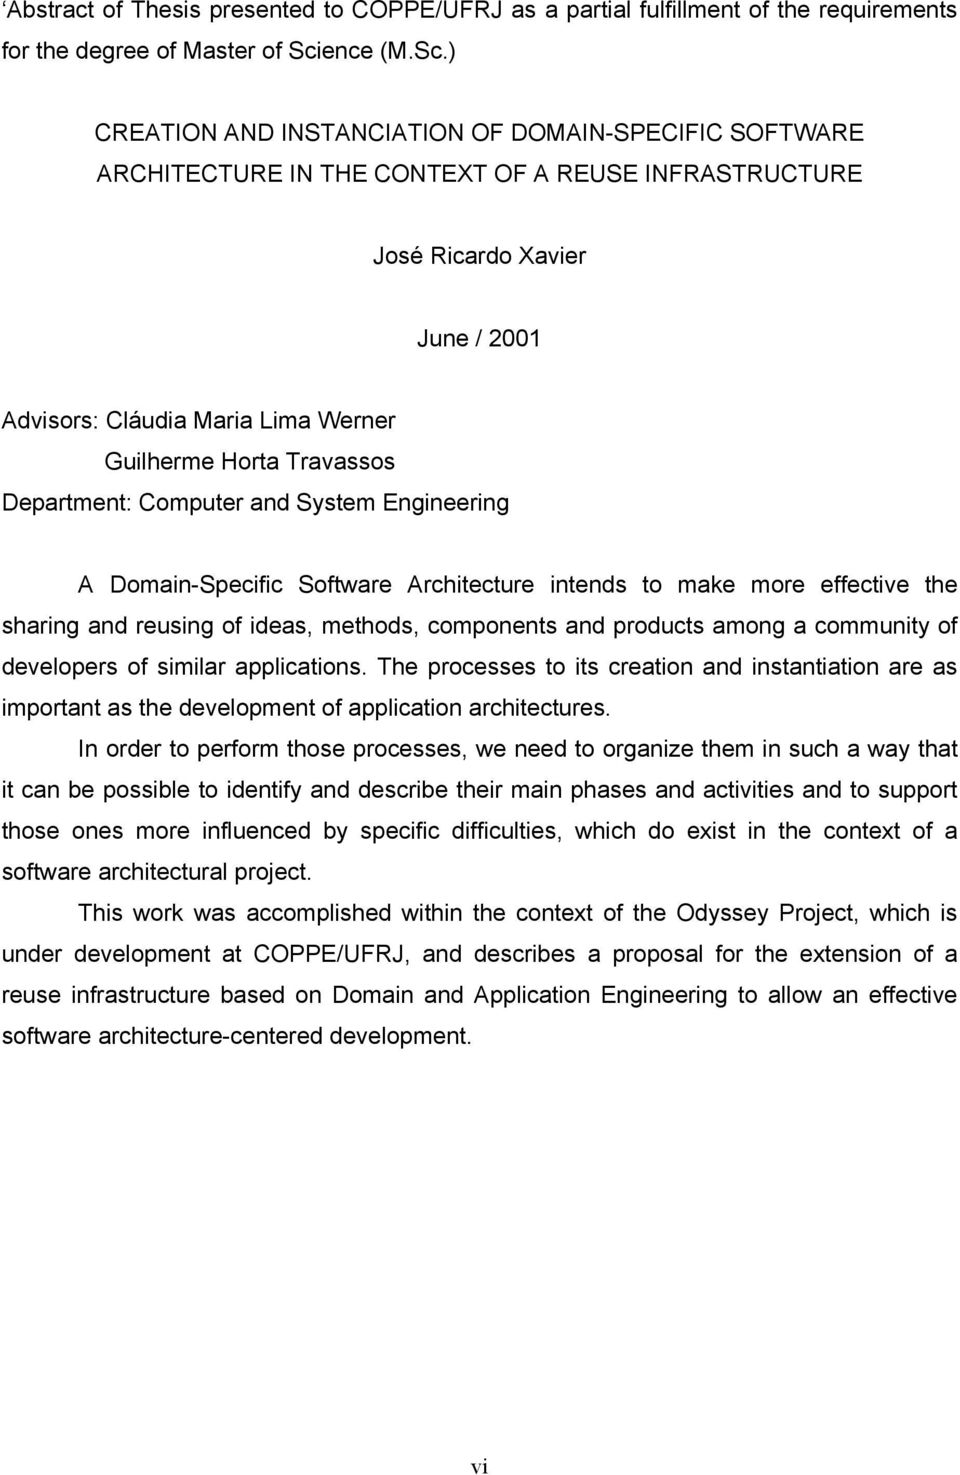 ) CREATION AND INSTANCIATION OF DOMAIN-SPECIFIC SOFTWARE ARCHITECTURE IN THE CONTEXT OF A REUSE INFRASTRUCTURE José Ricardo Xavier June / 2001 Advisors: Cláudia Maria Lima Werner Guilherme Horta